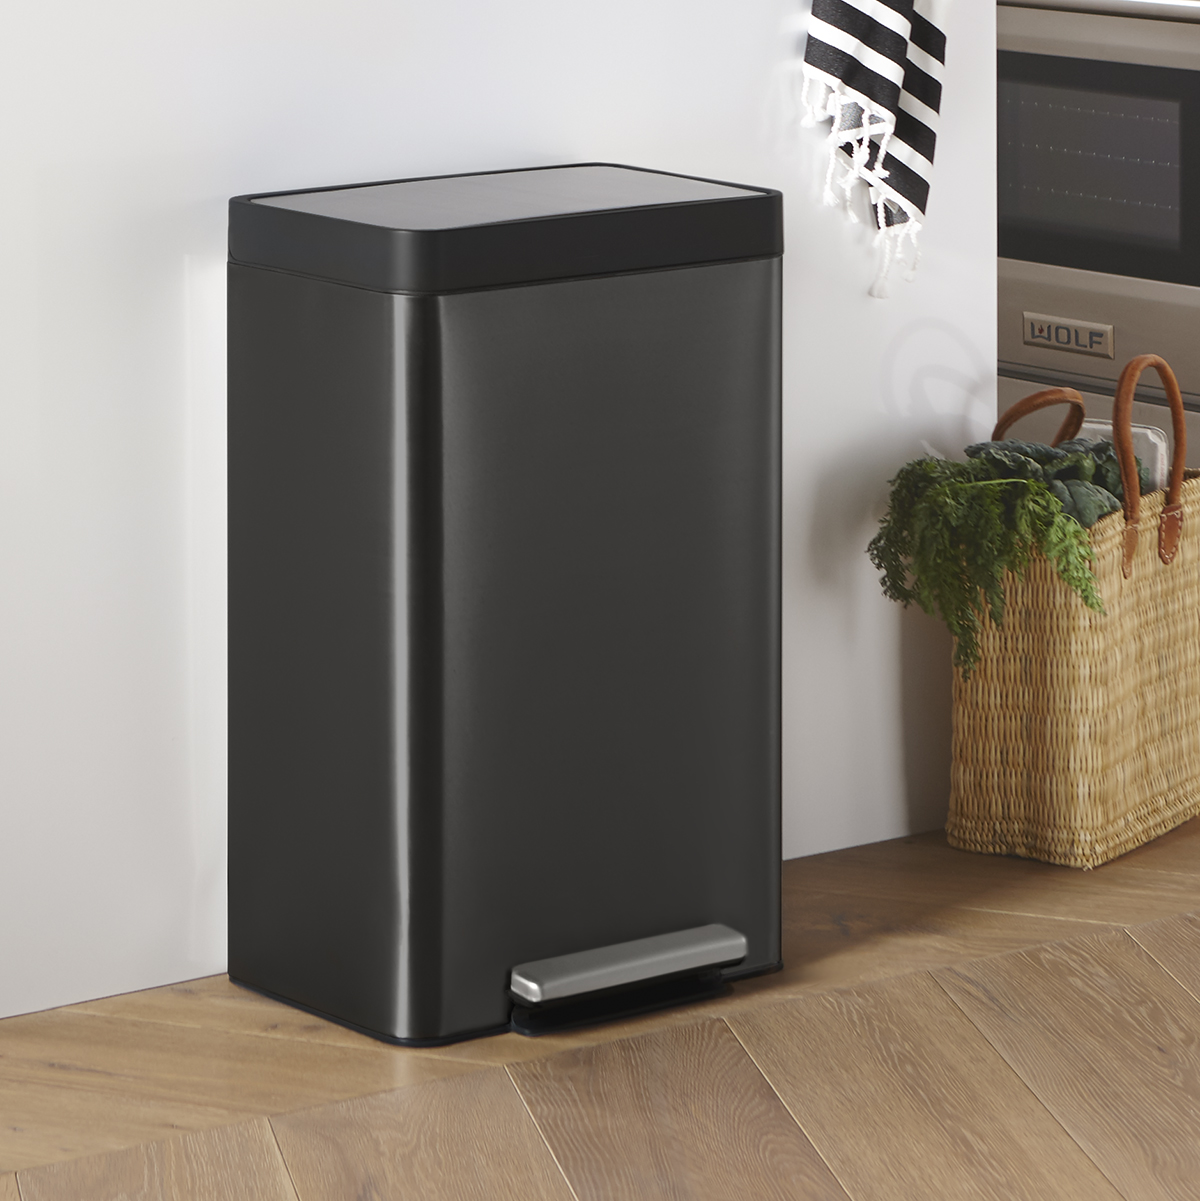 Kohler Black Stainless Steel 13 Gal Step Trash Can The Container Store